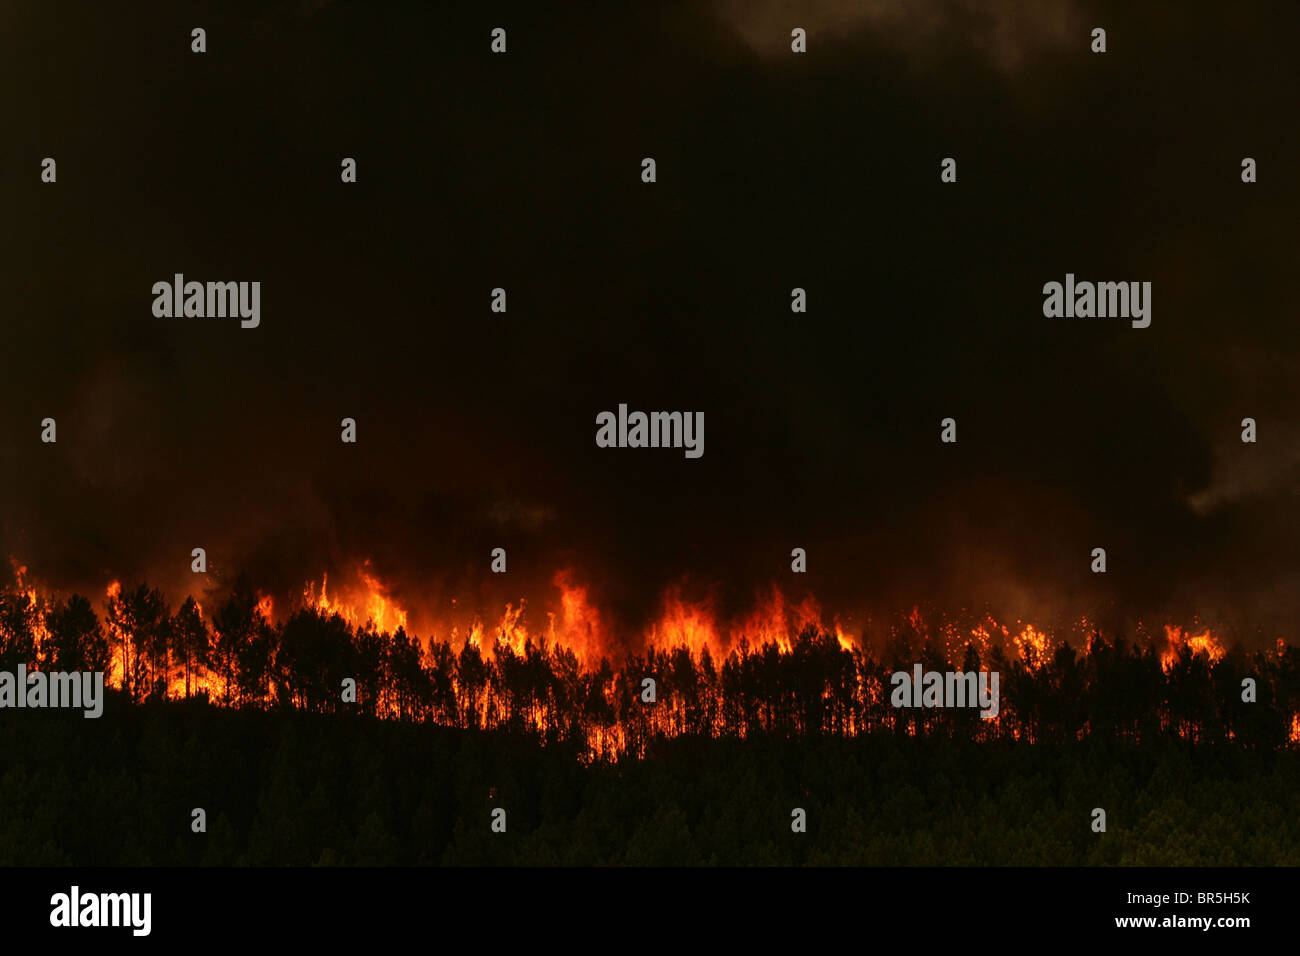 A wildfire rages on in a forest - Stock Image